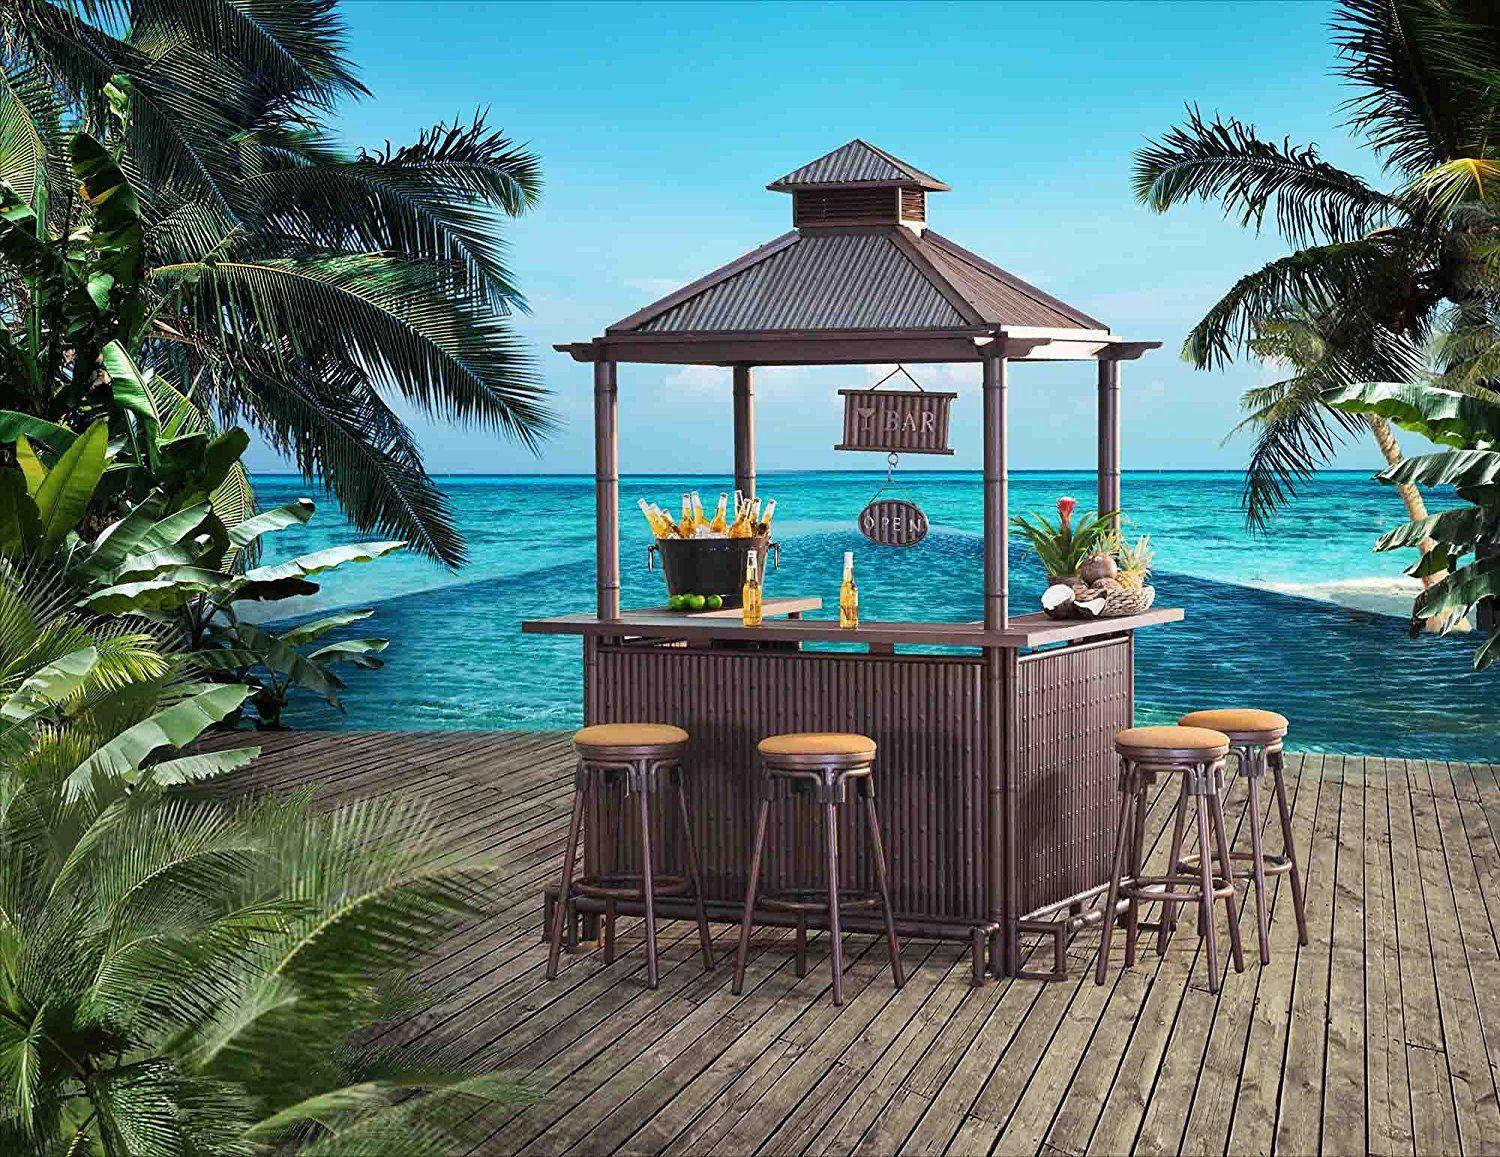 Sunjoy Tiki 74 4 X 56 1 107 Aluminum Bar Set Garden Outdoor